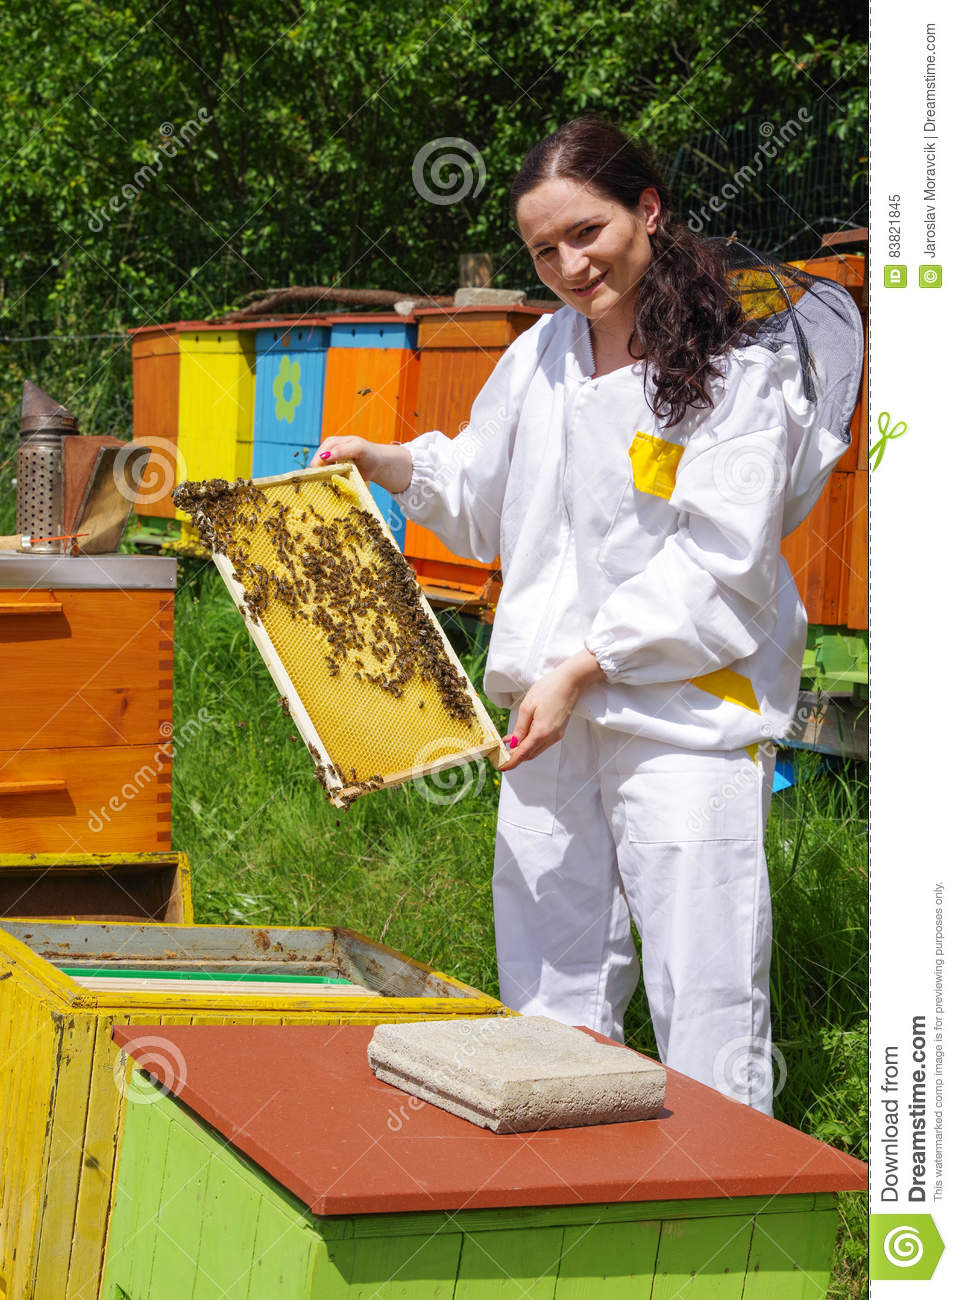 Beekeeper and beehives